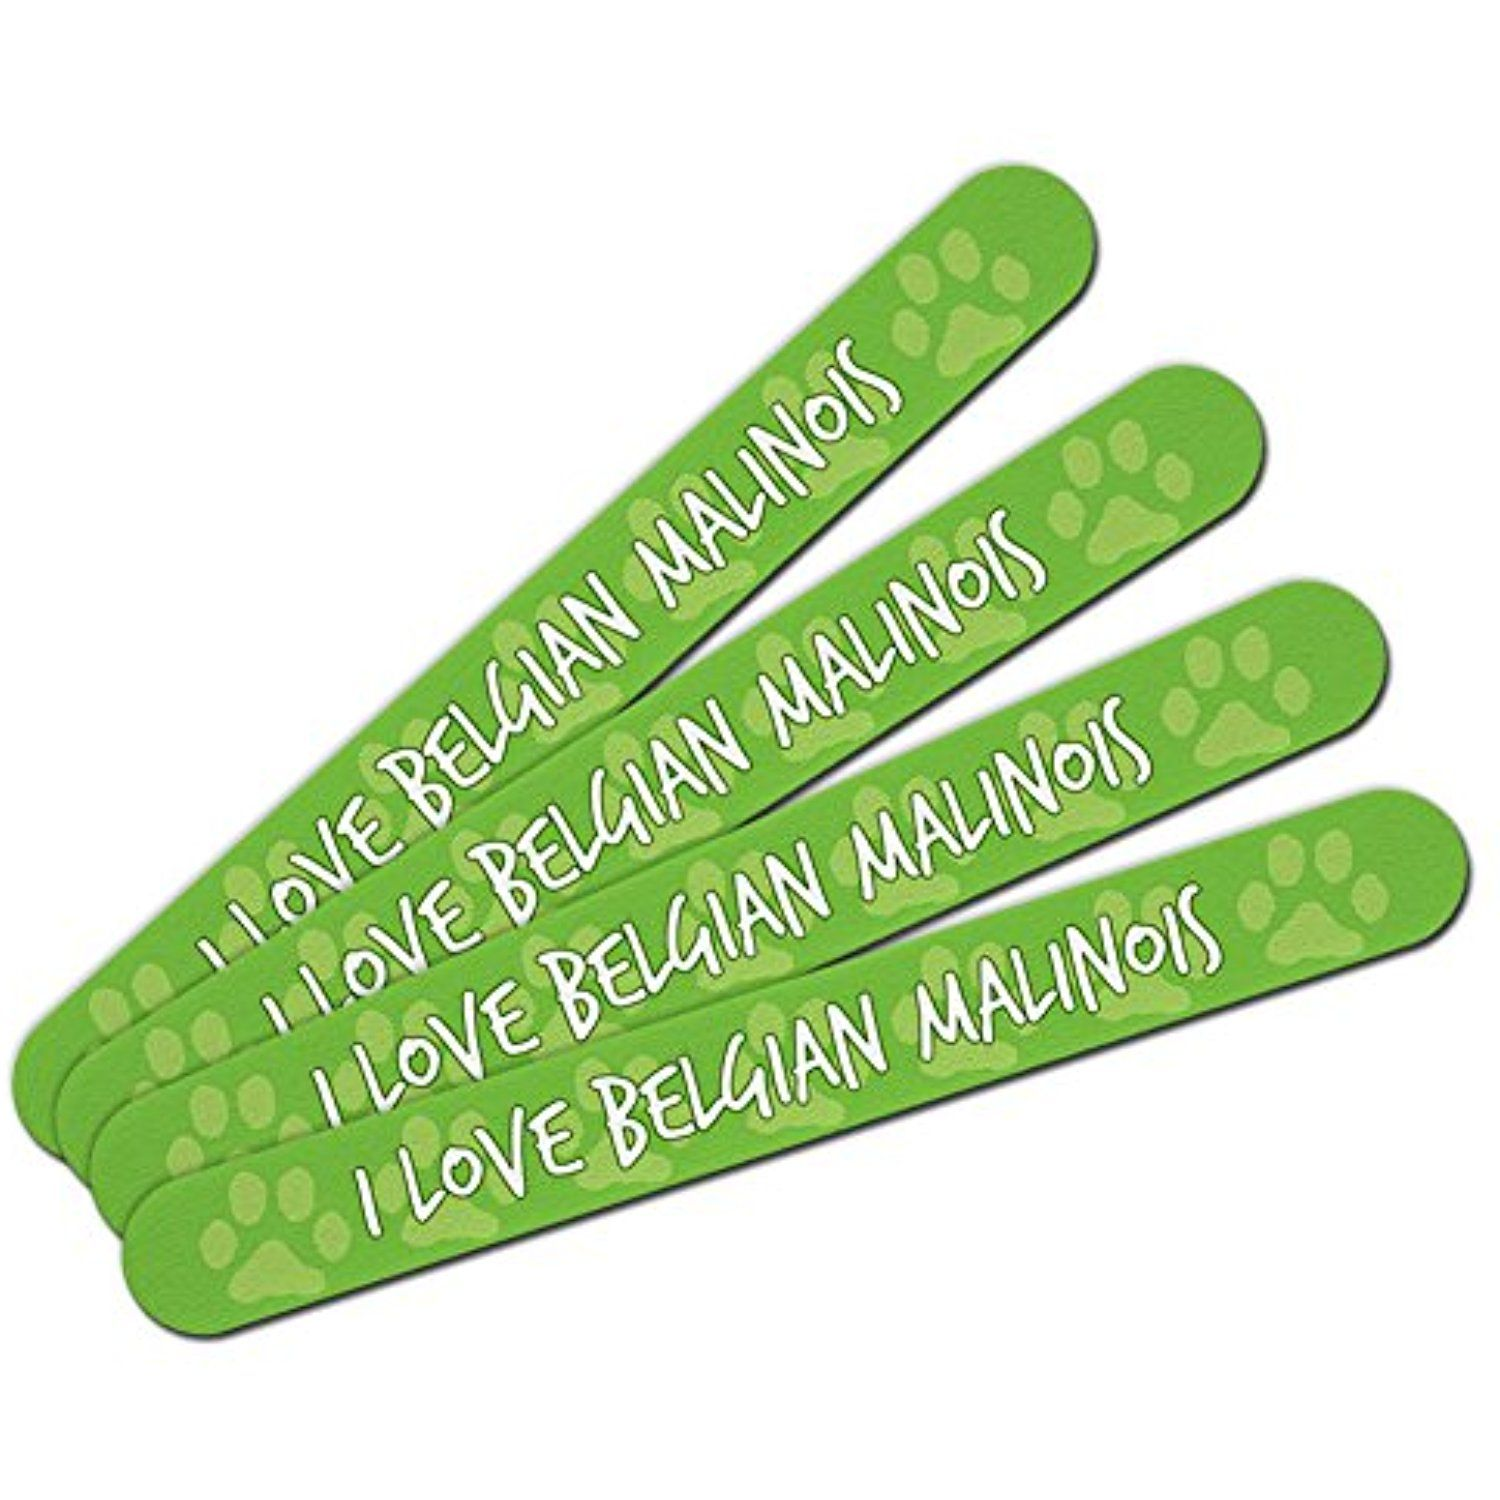 Double-Sided Nail File Emery Board Set 4 Pack I Love Heart Dogs A-C ...